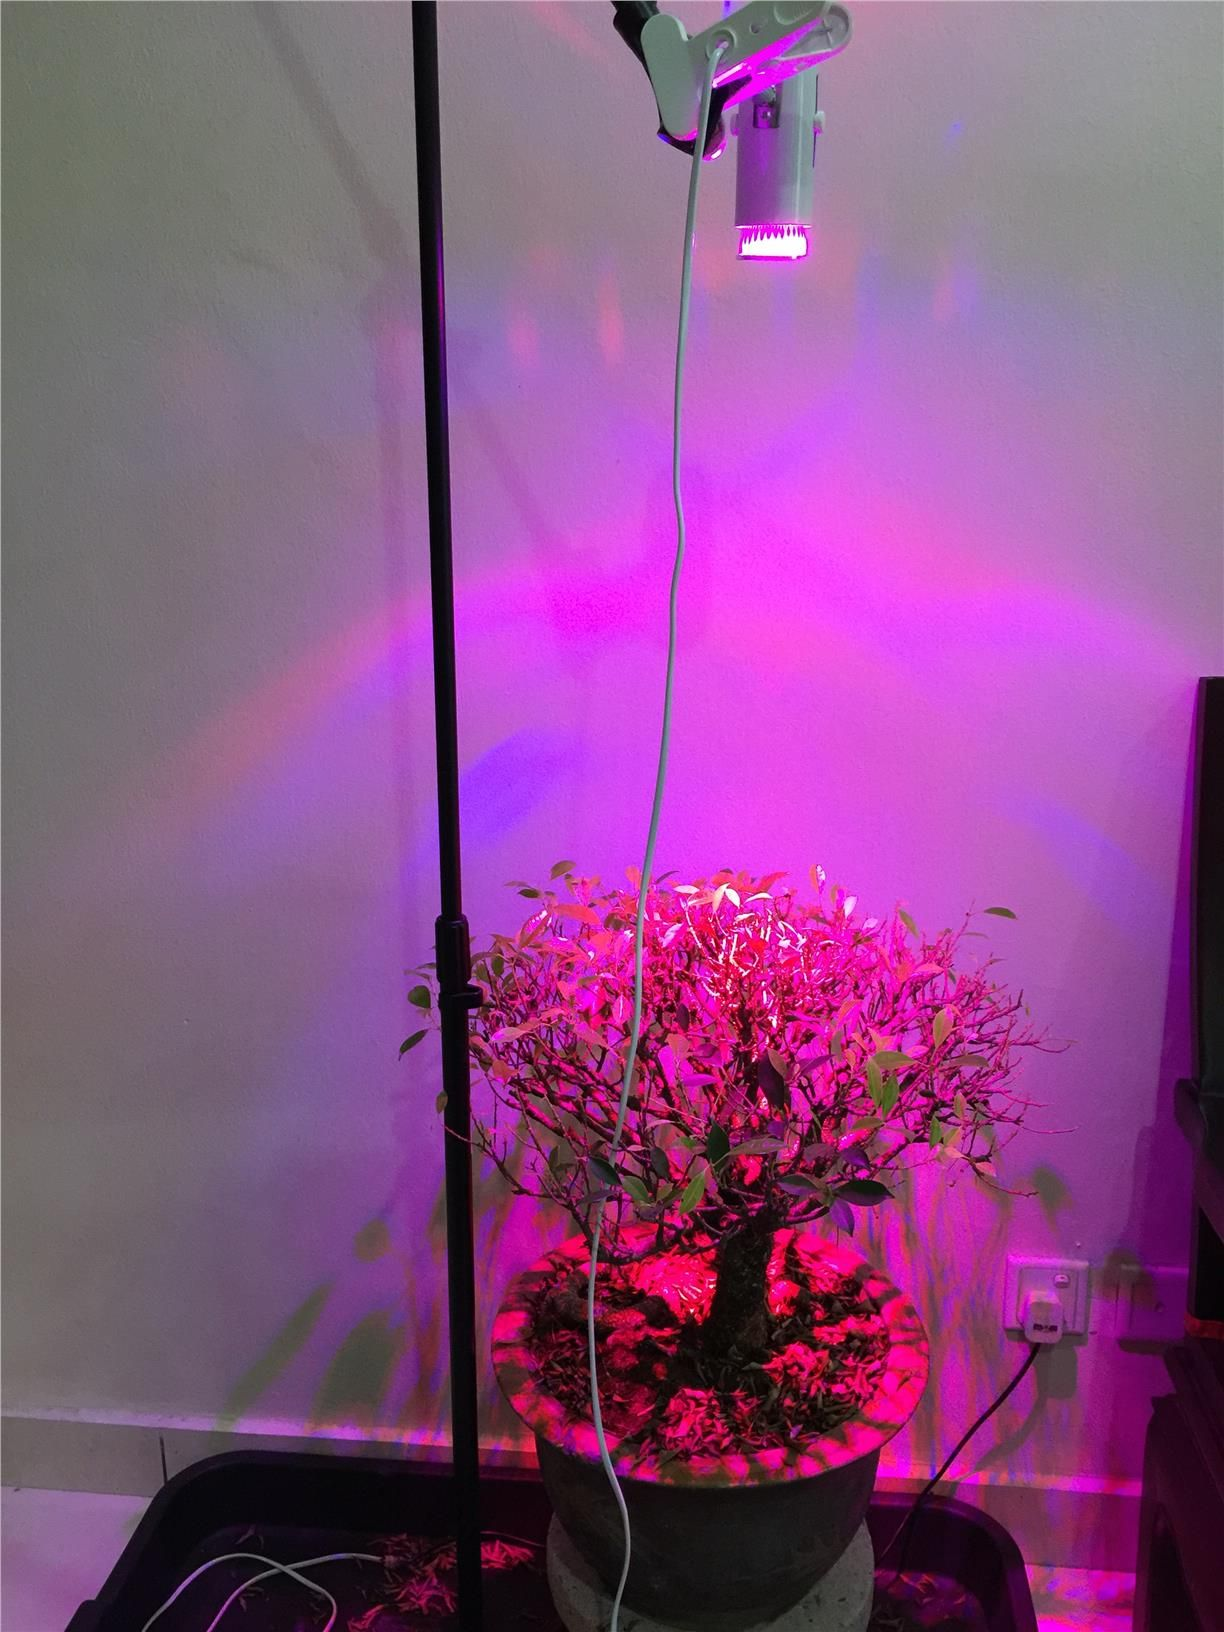 Floor Lamp For Plants Best Led Grow Lights Led Grow Lights Grow Lights